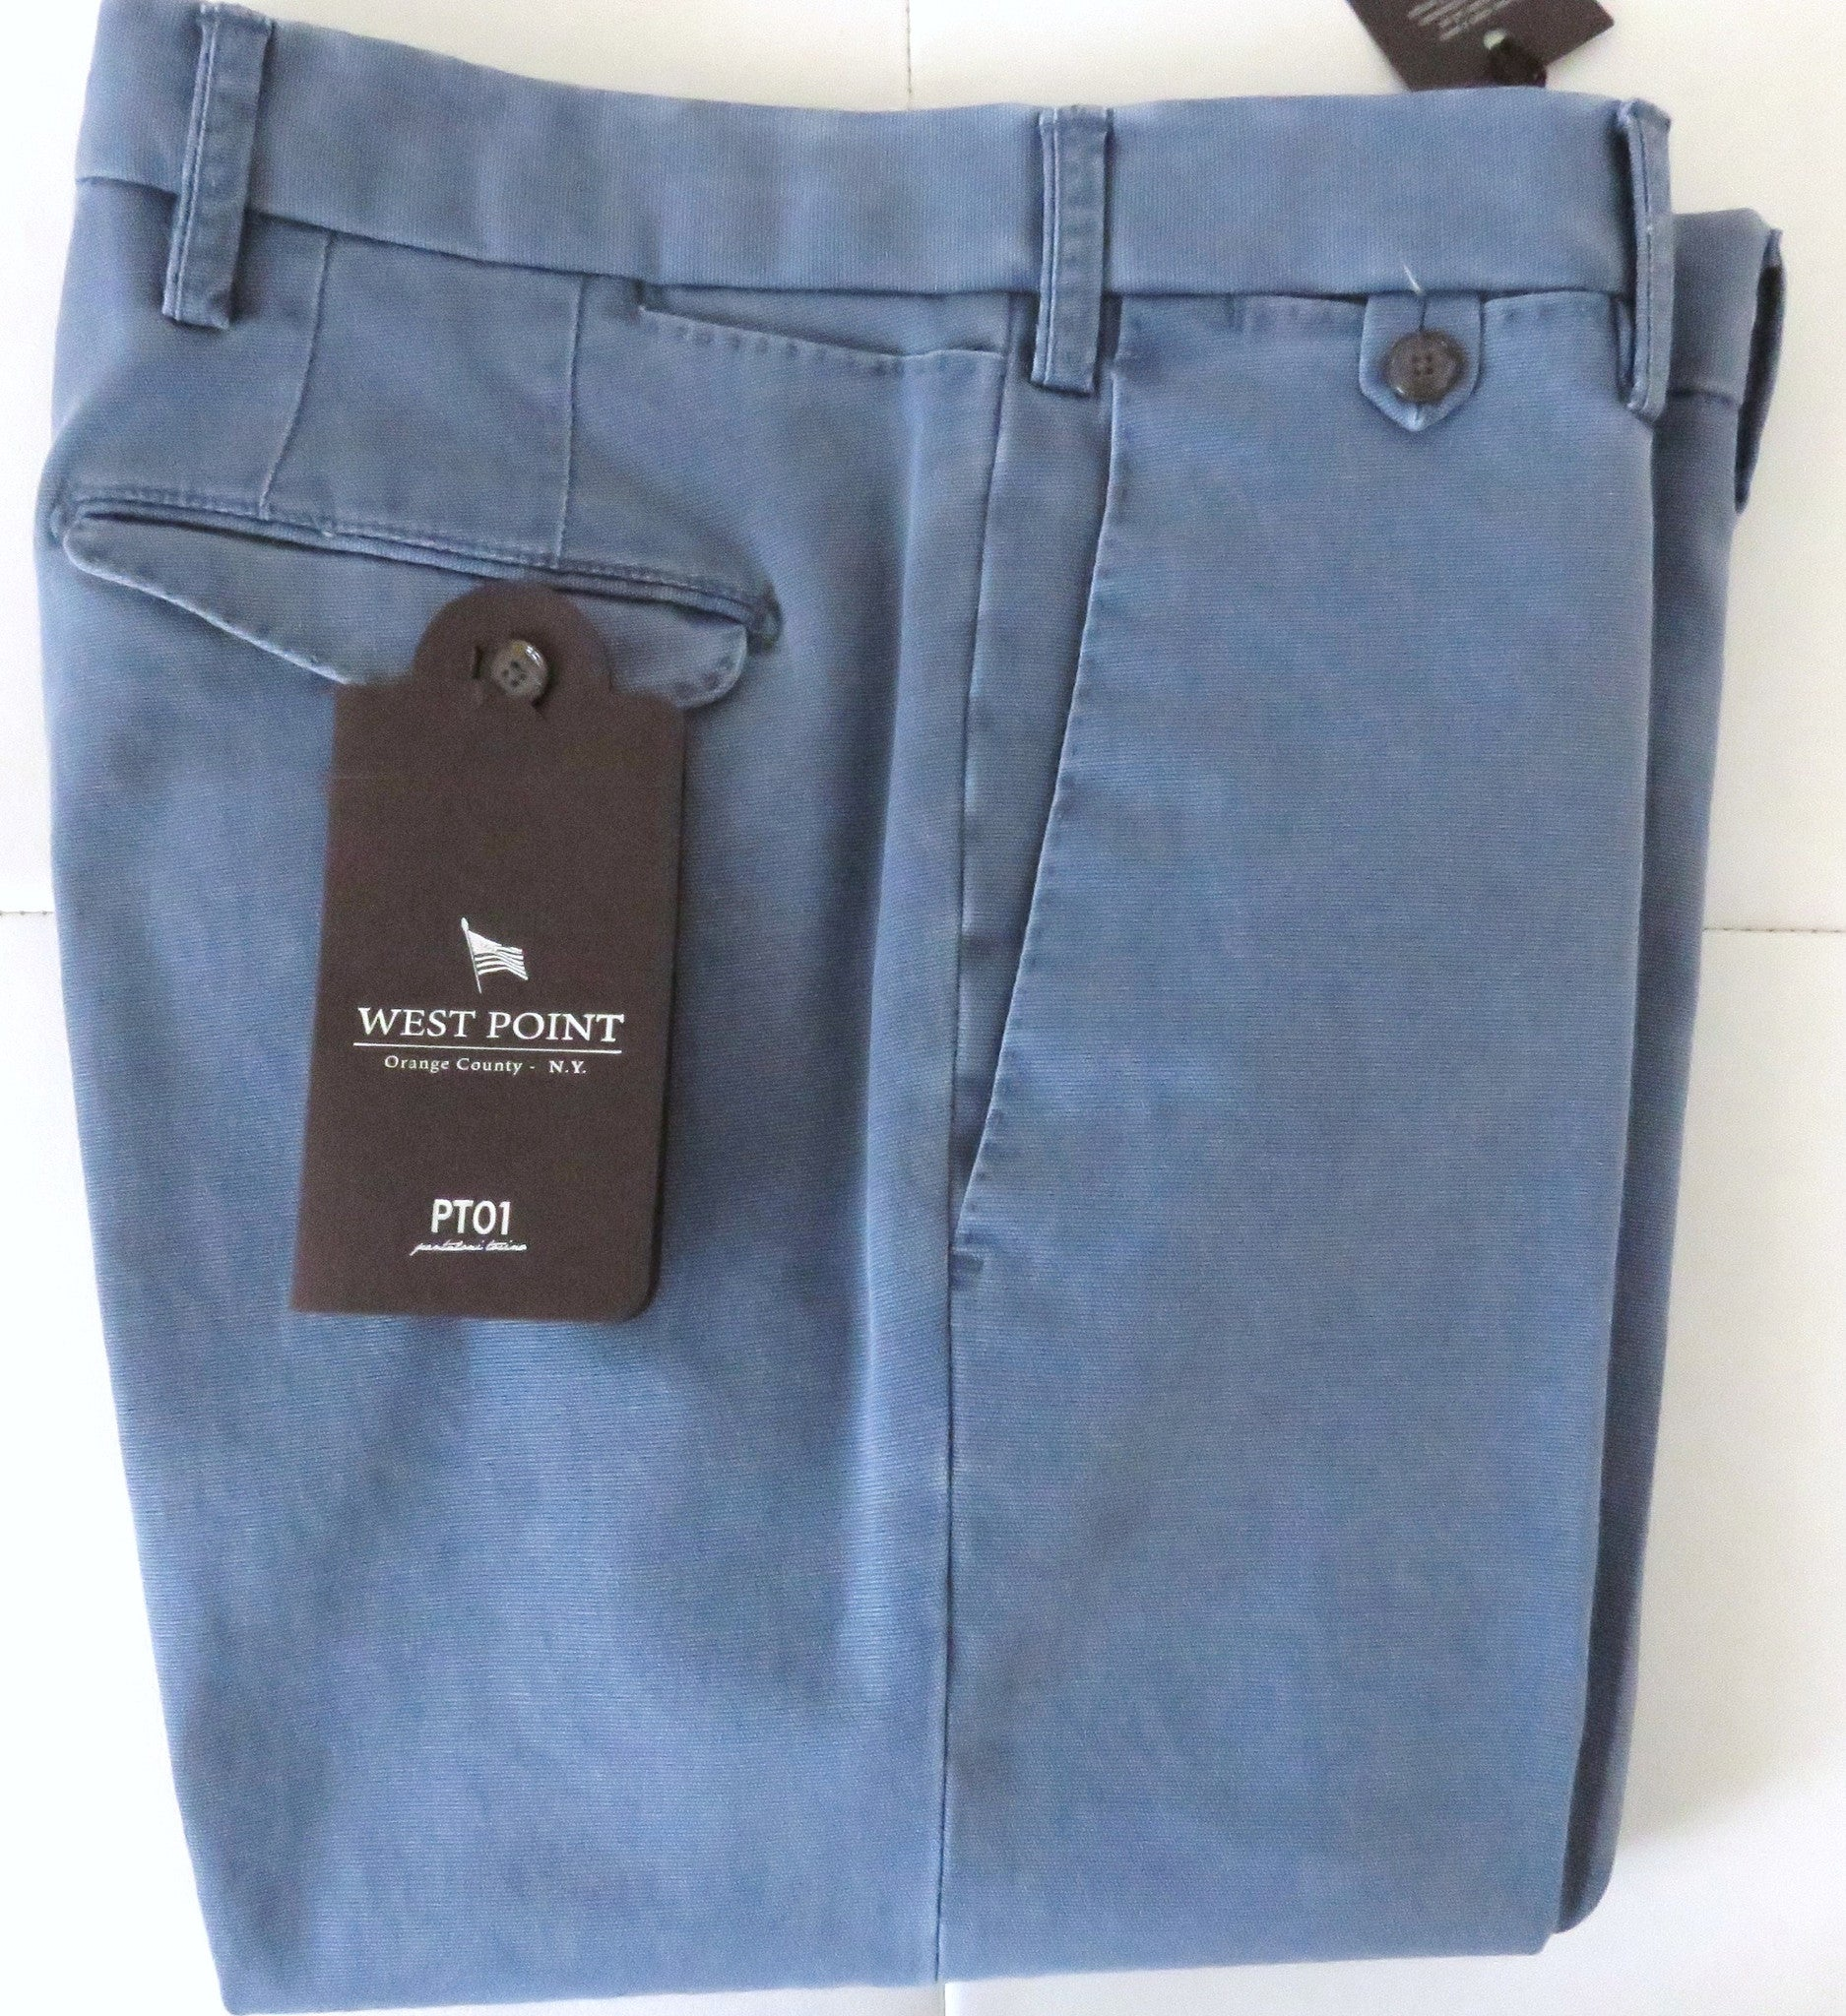 PT01 Pantaloni Torino - Model West Point ocean